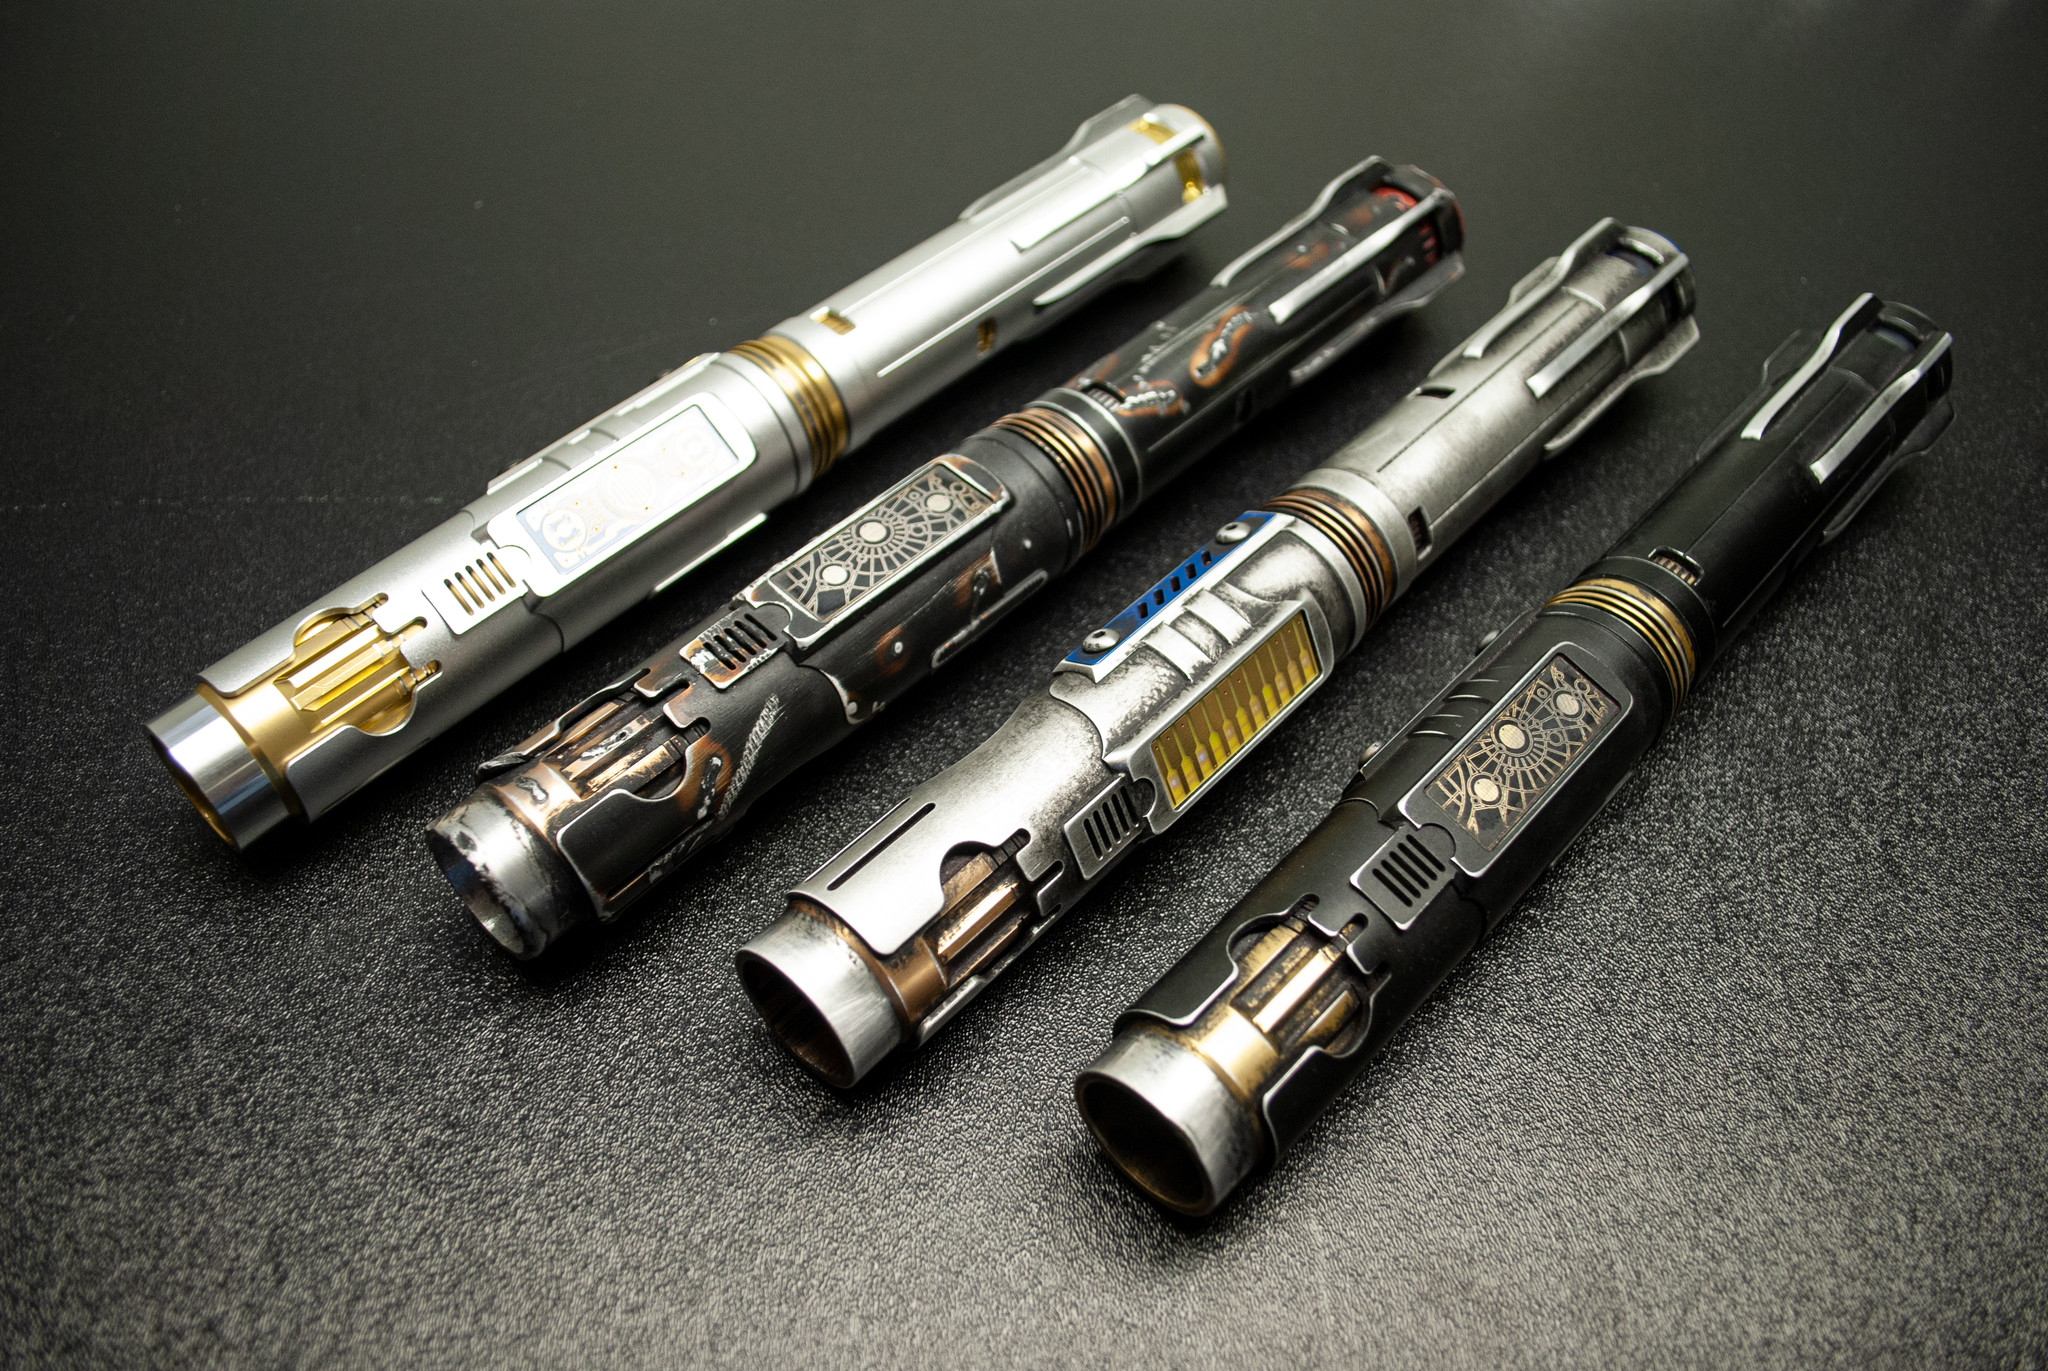 Scion Smart Saber Electrum Sabercrafts So i've been eyeballing the aegis smart saber and was wondering if they do coupons or if anyone had any. scion smart saber